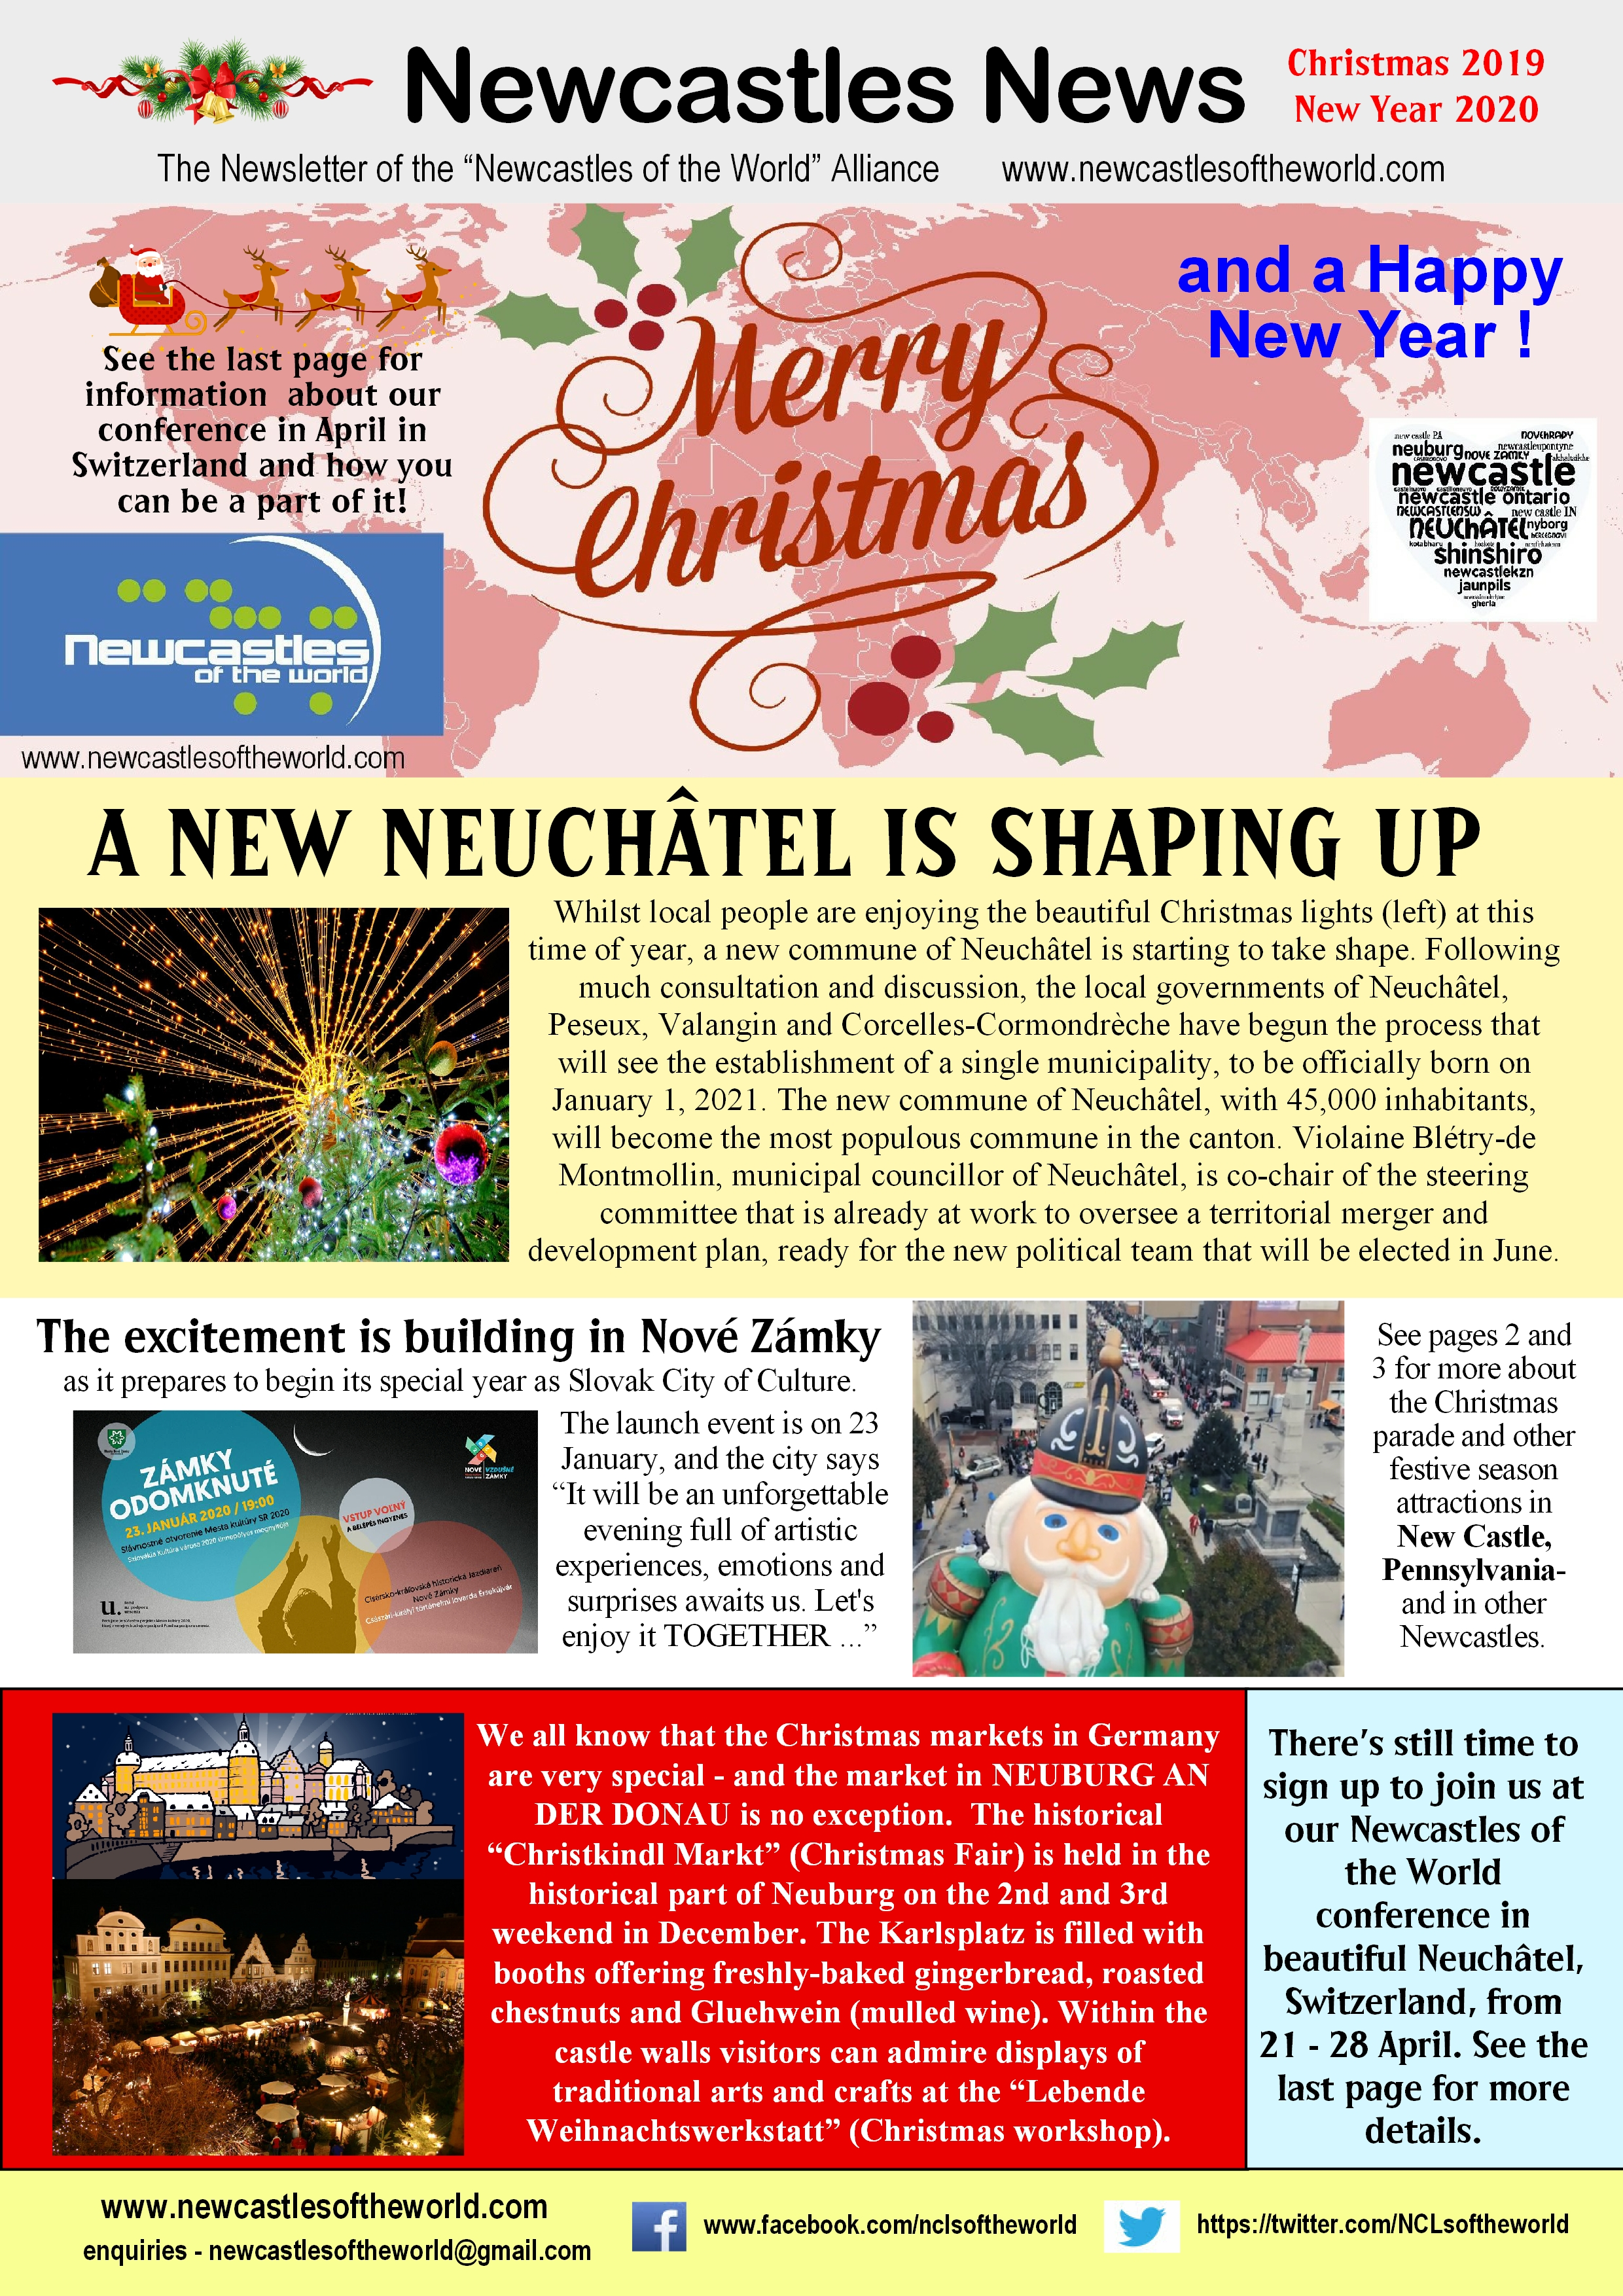 Newcastles of the World Newsletter - Christmas 2019 and New Year